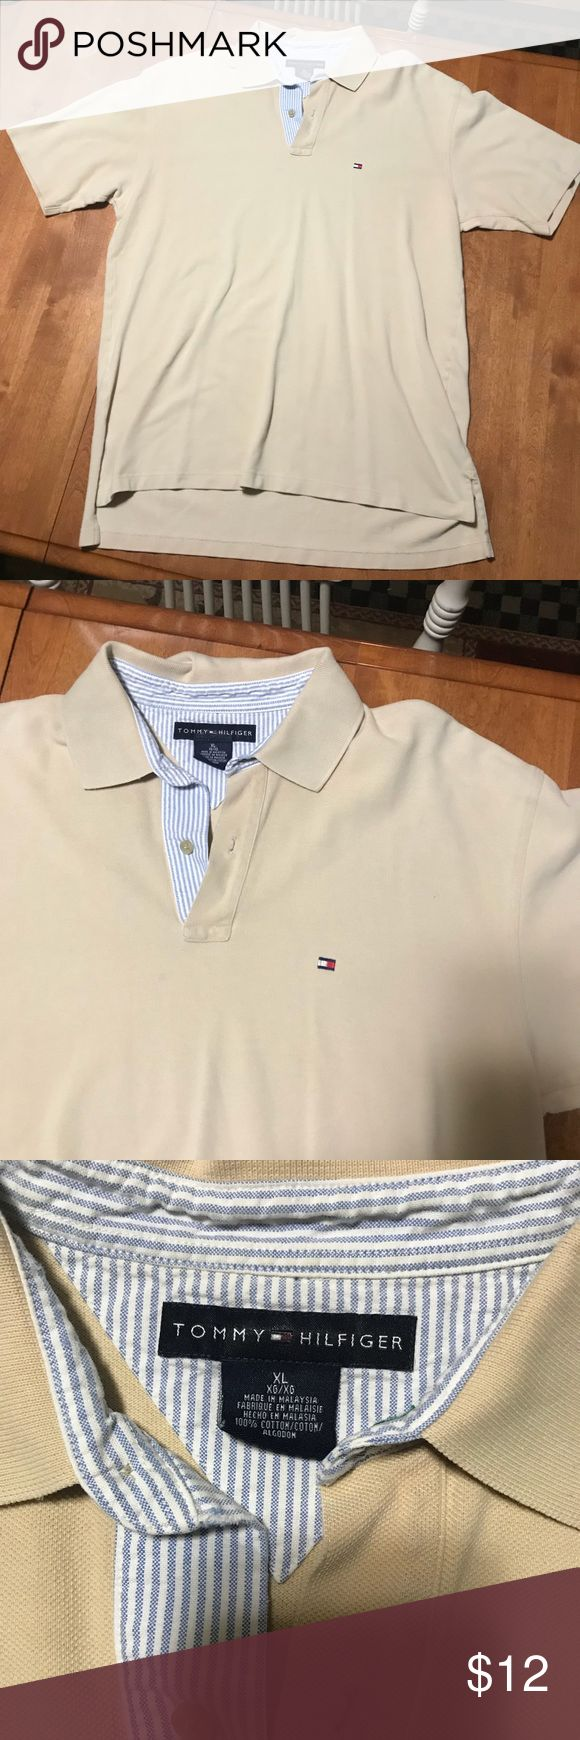 Tommy Hilfiger Polo Shirt In fantastic condition. Ready for immediate use! The color is beige. Tommy Hilfiger Shirts Polos